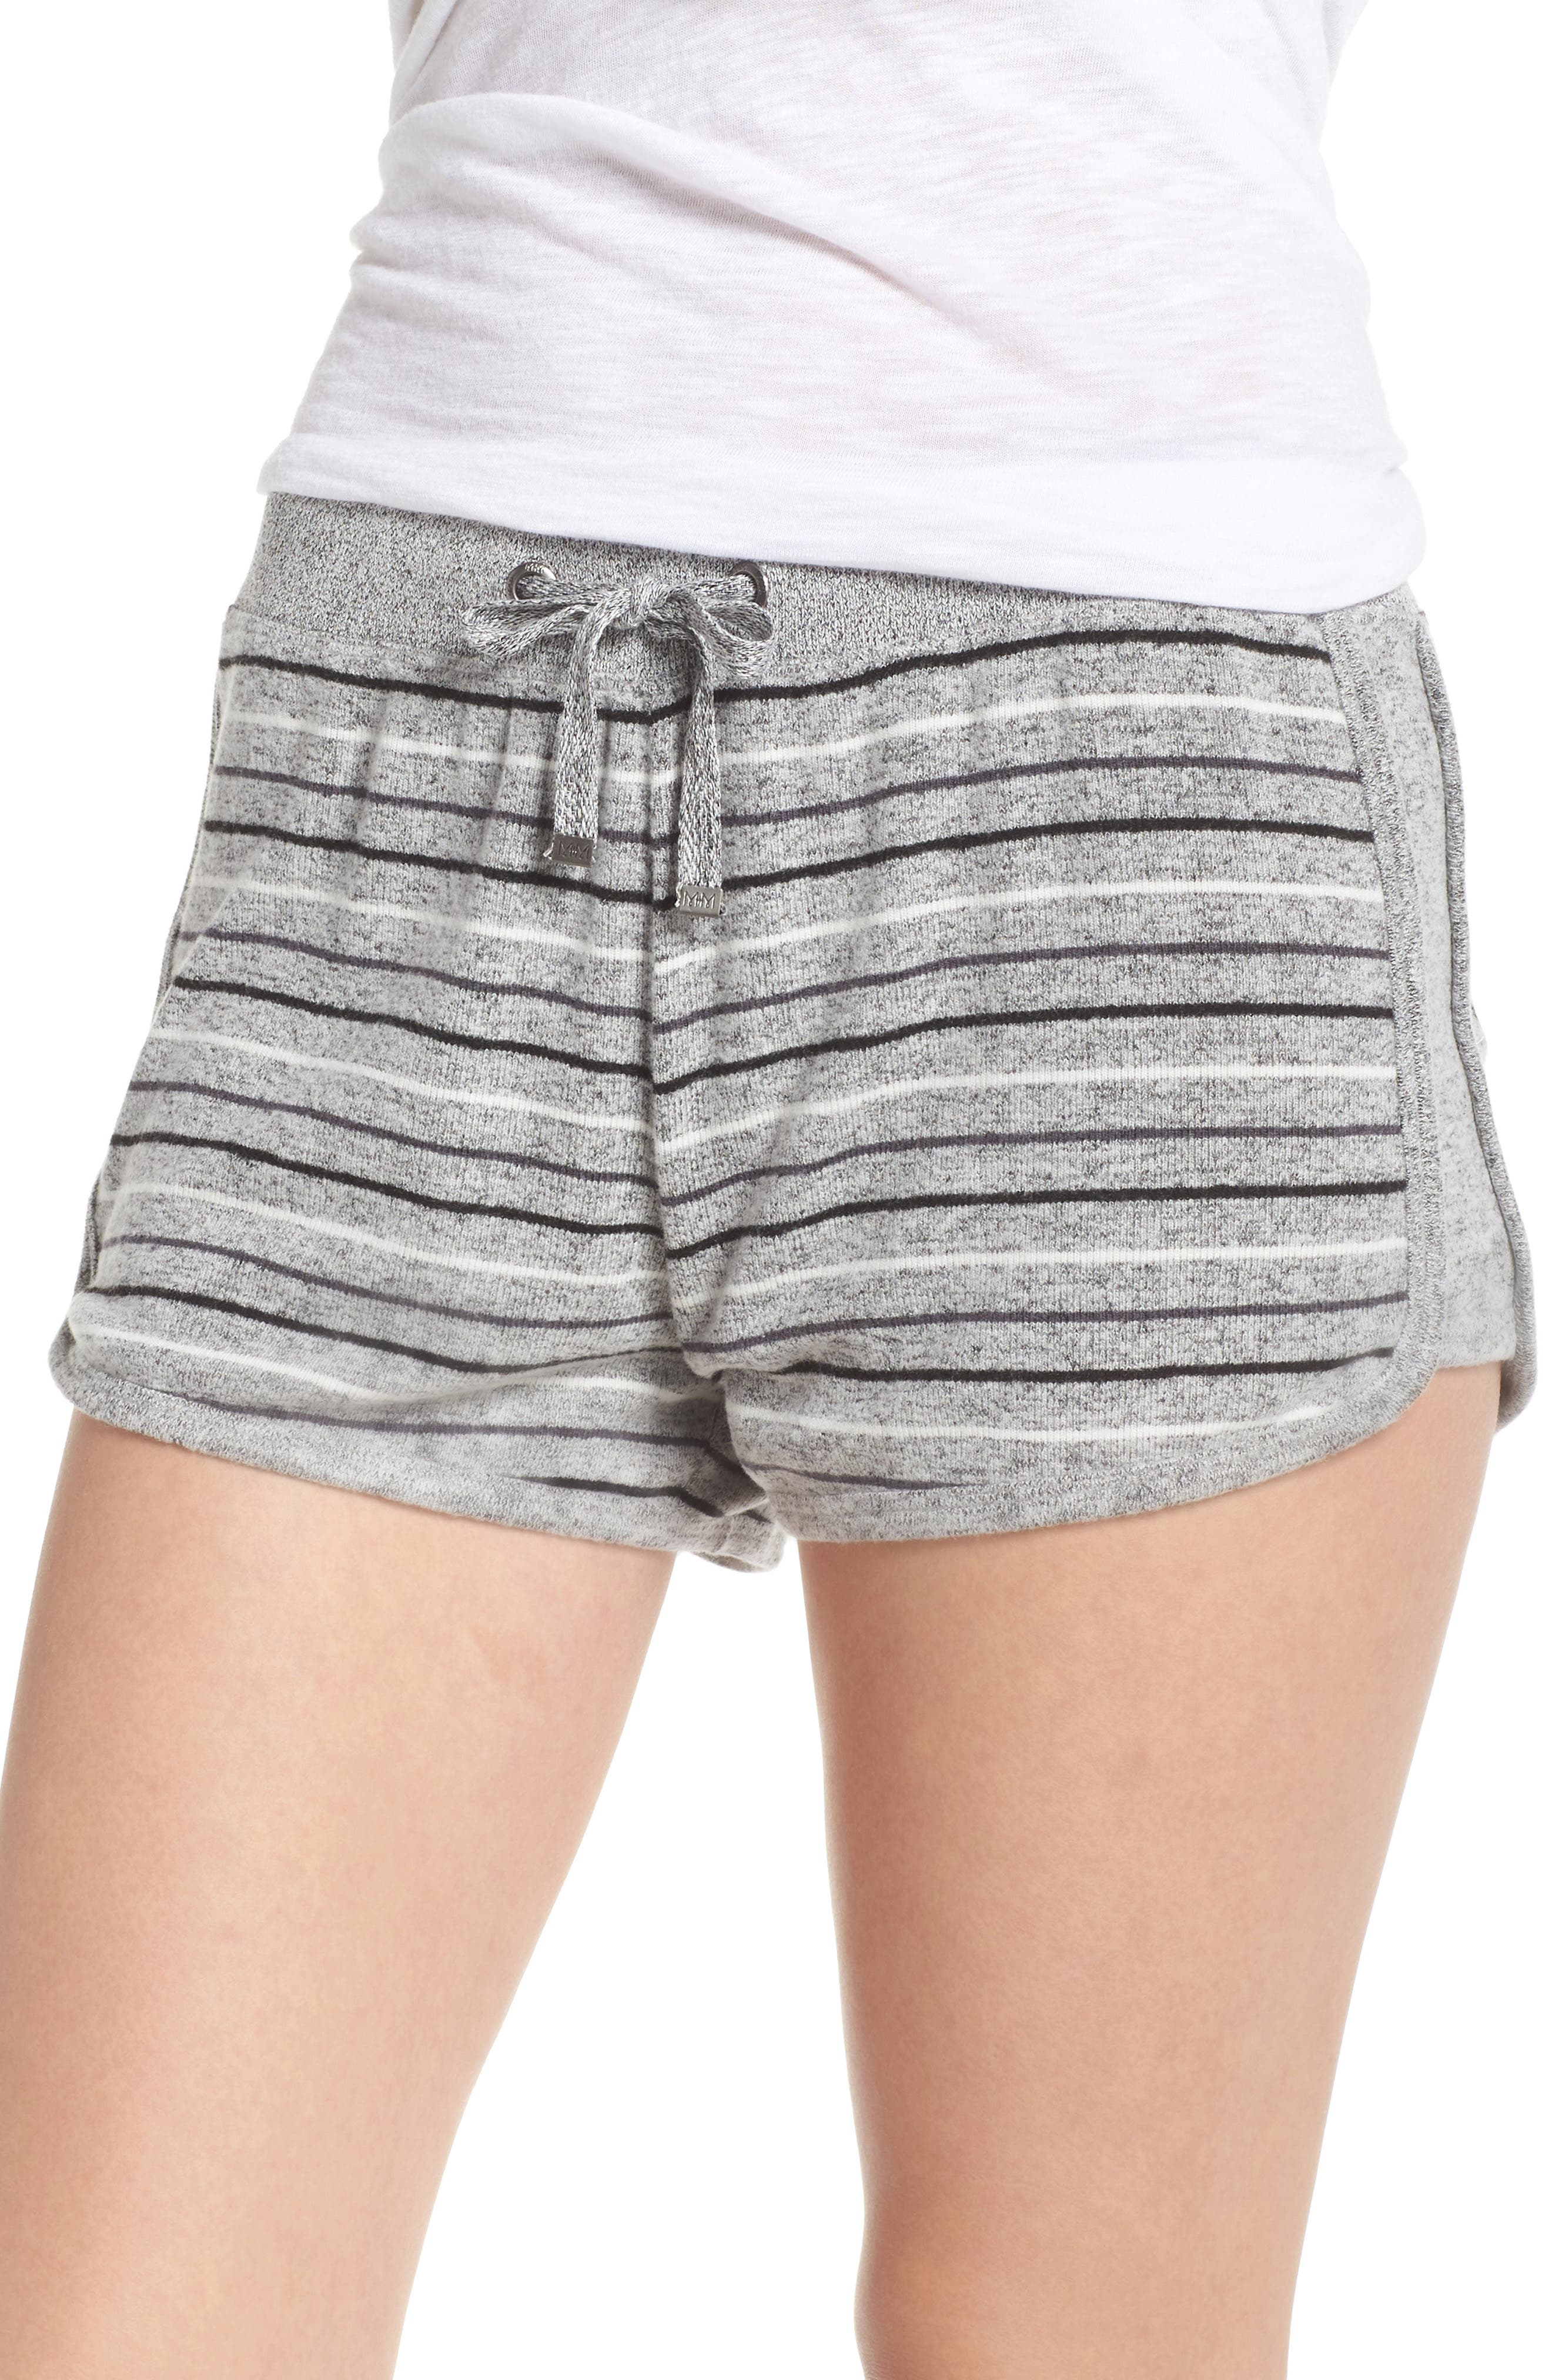 Bring It On Lounge Shorts,                         Main,                         color, 310